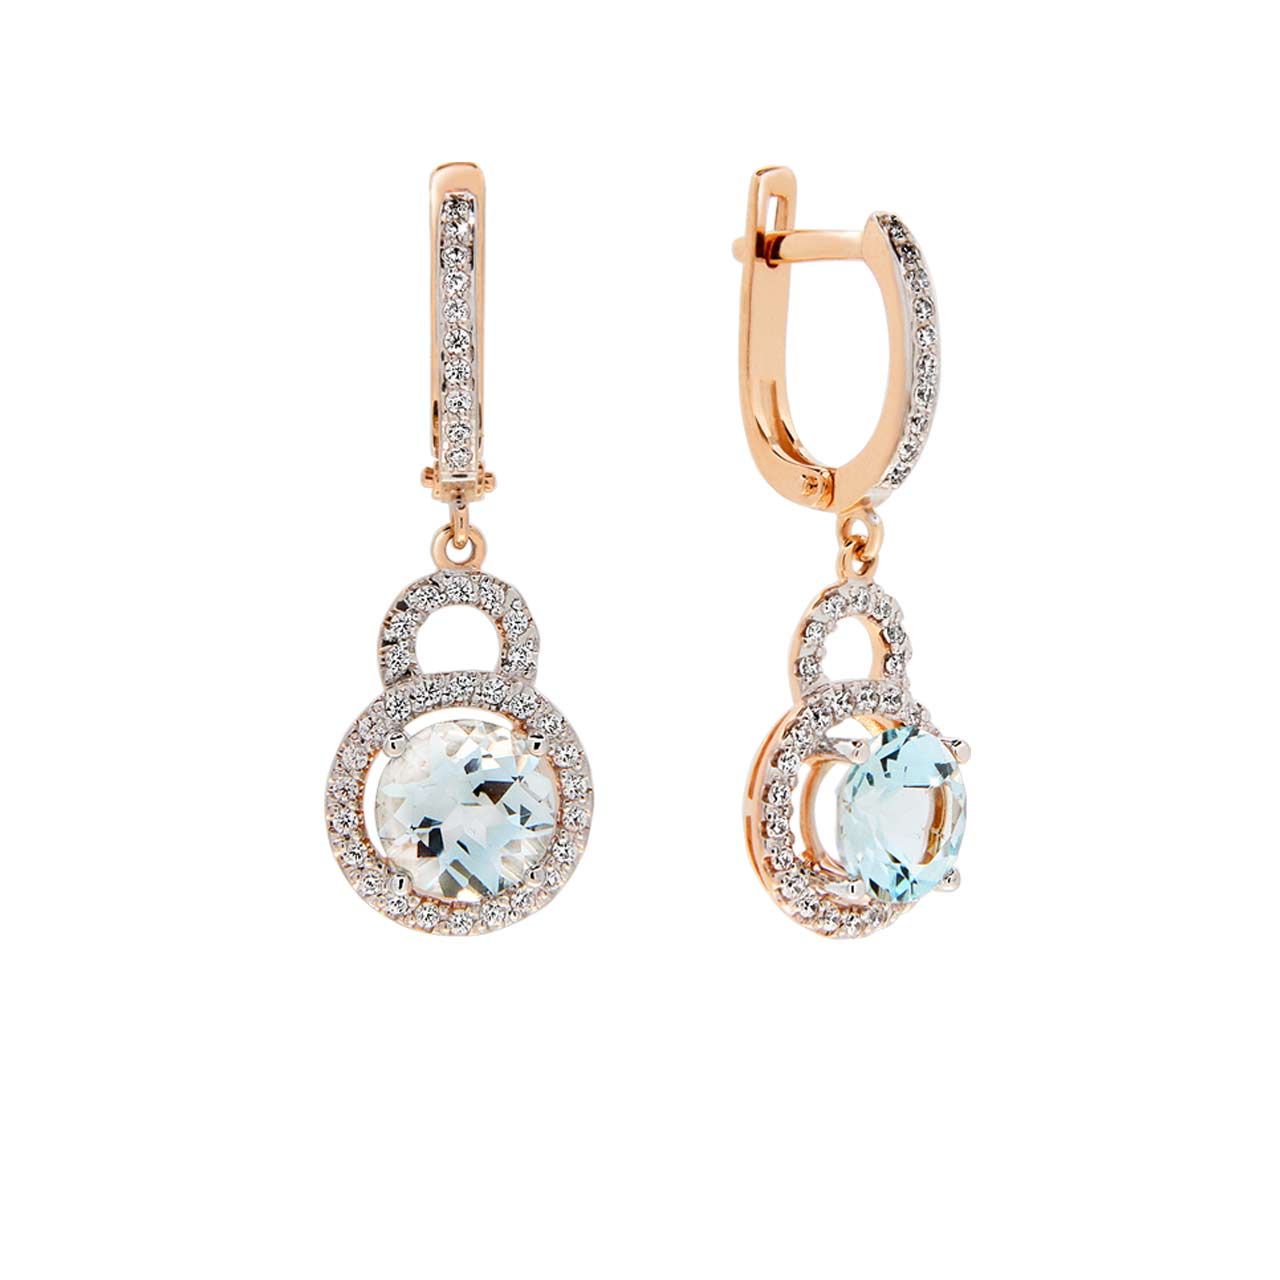 Pale blue topaz earrings 1